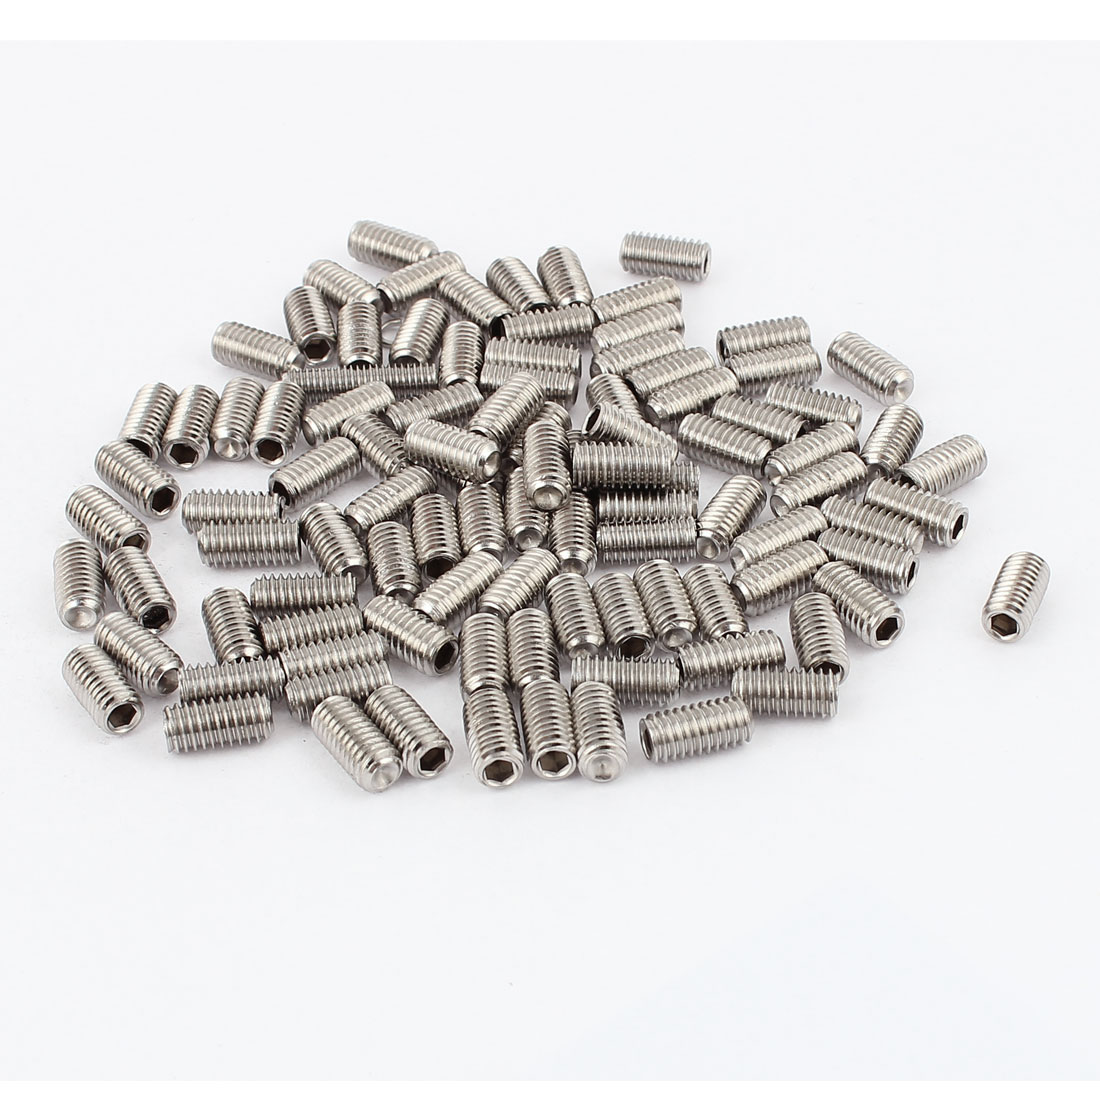 M6x12mm Stainless Steel Hex Socket Set Cap Point Grub Screws Silver Tone 100Pcs